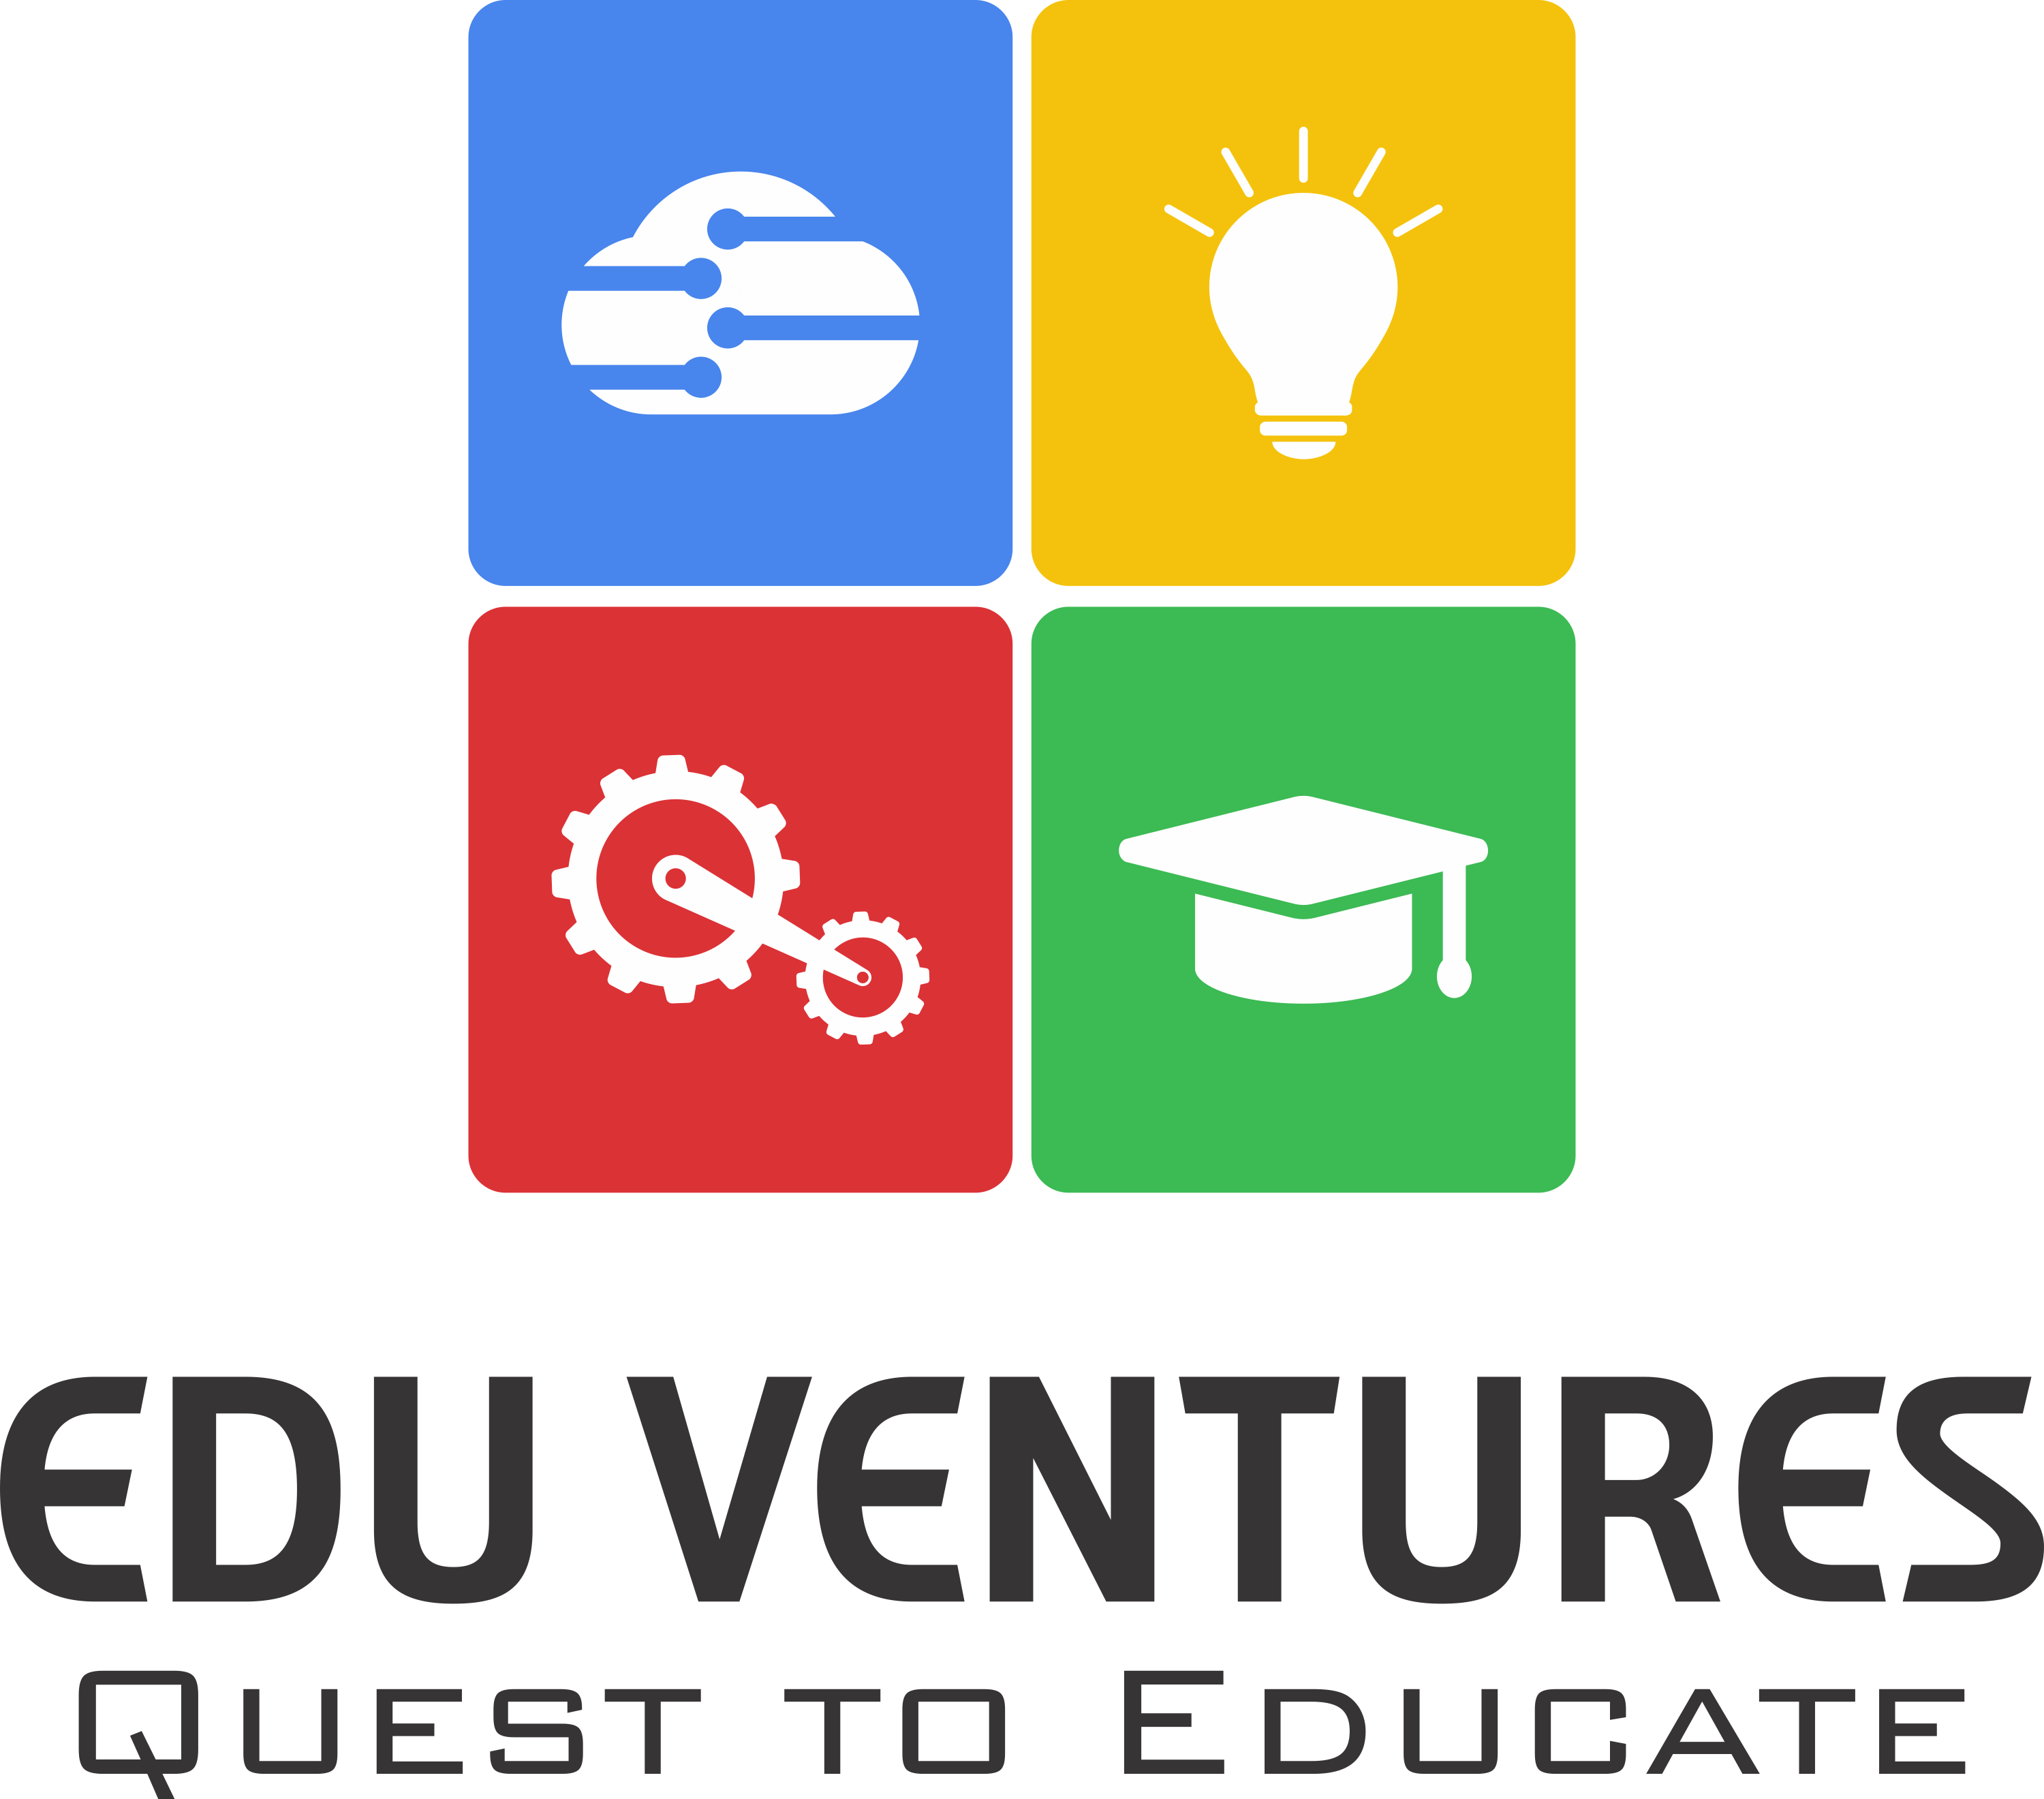 Edu Ventures Pvt Ltd